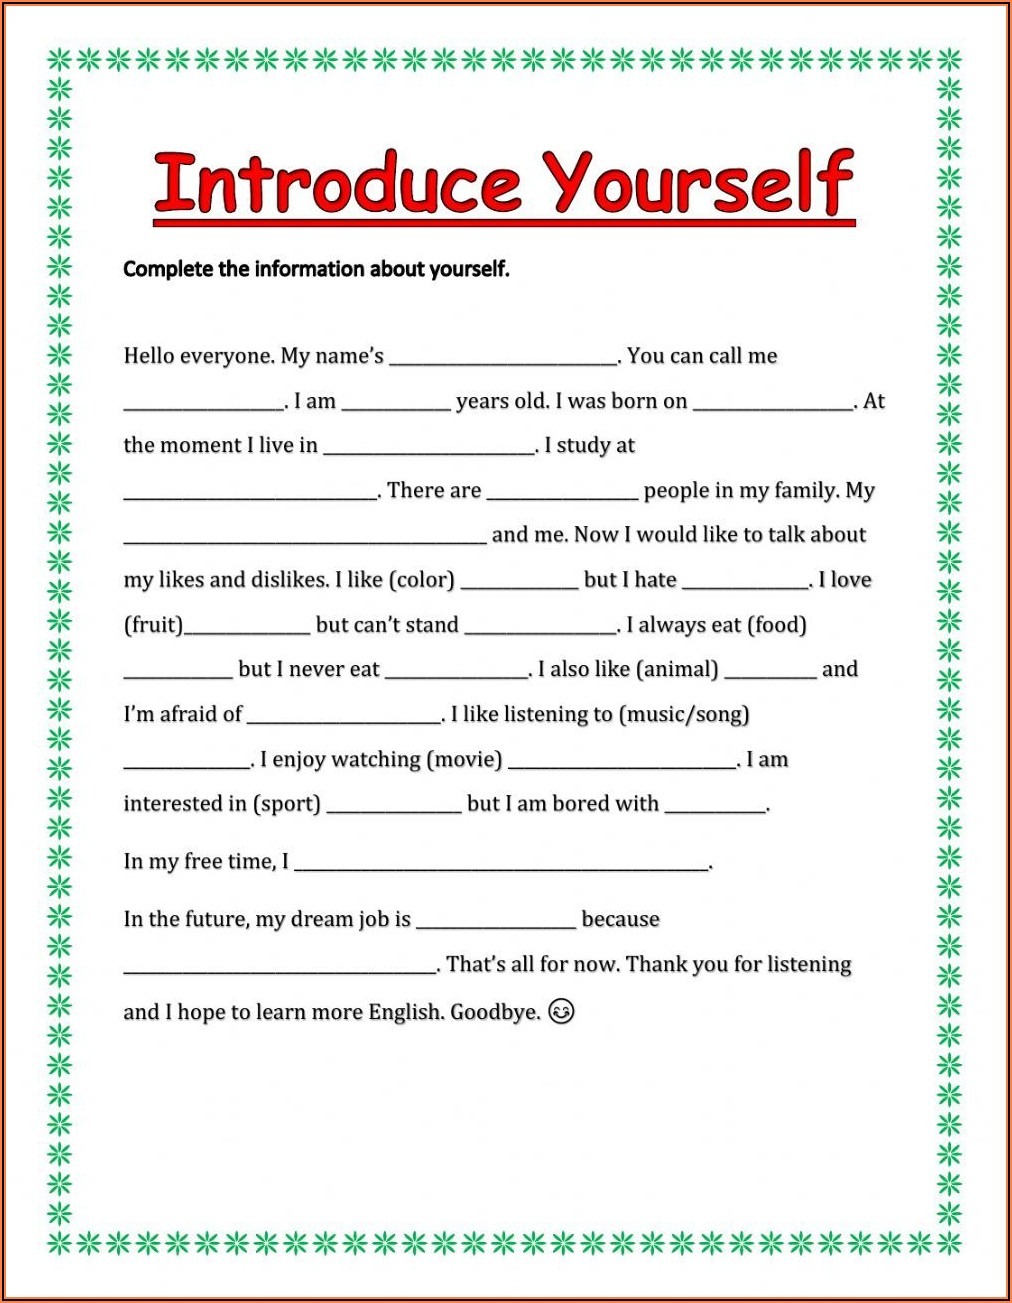 Writing Introductions Worksheet Pdf